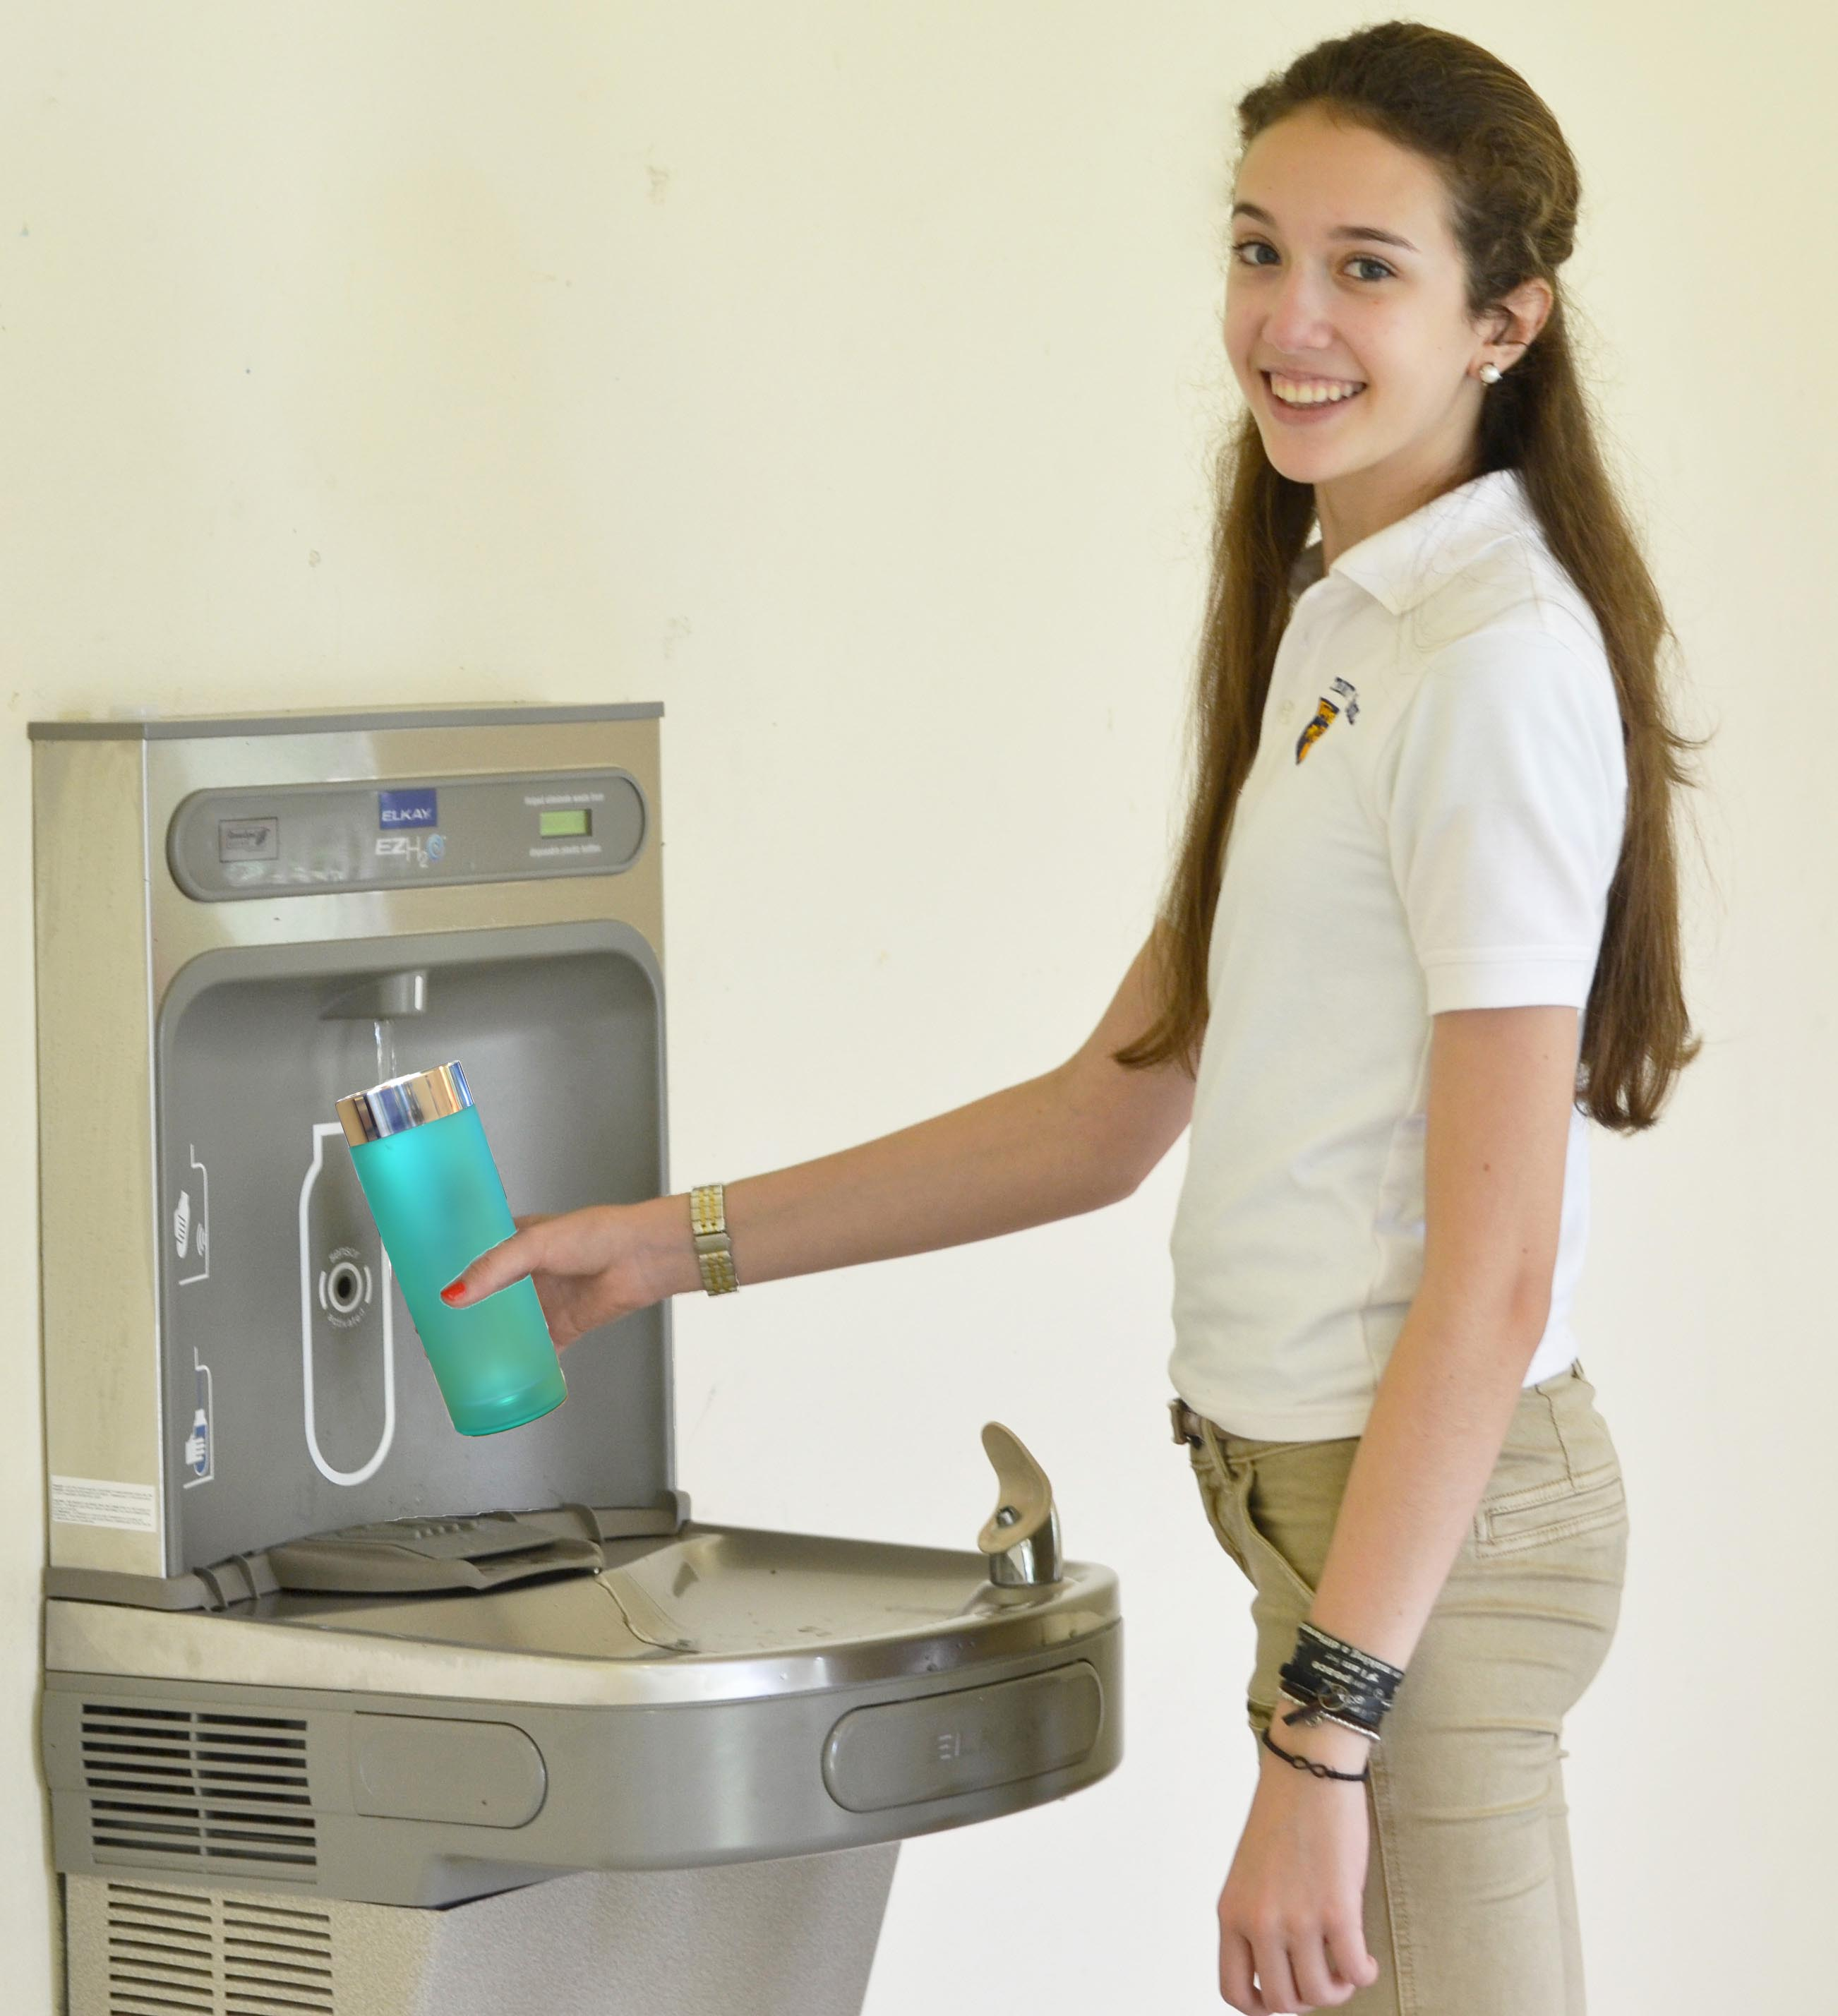 Water fountains schools - Eco Friendly Water Fountains For Schools